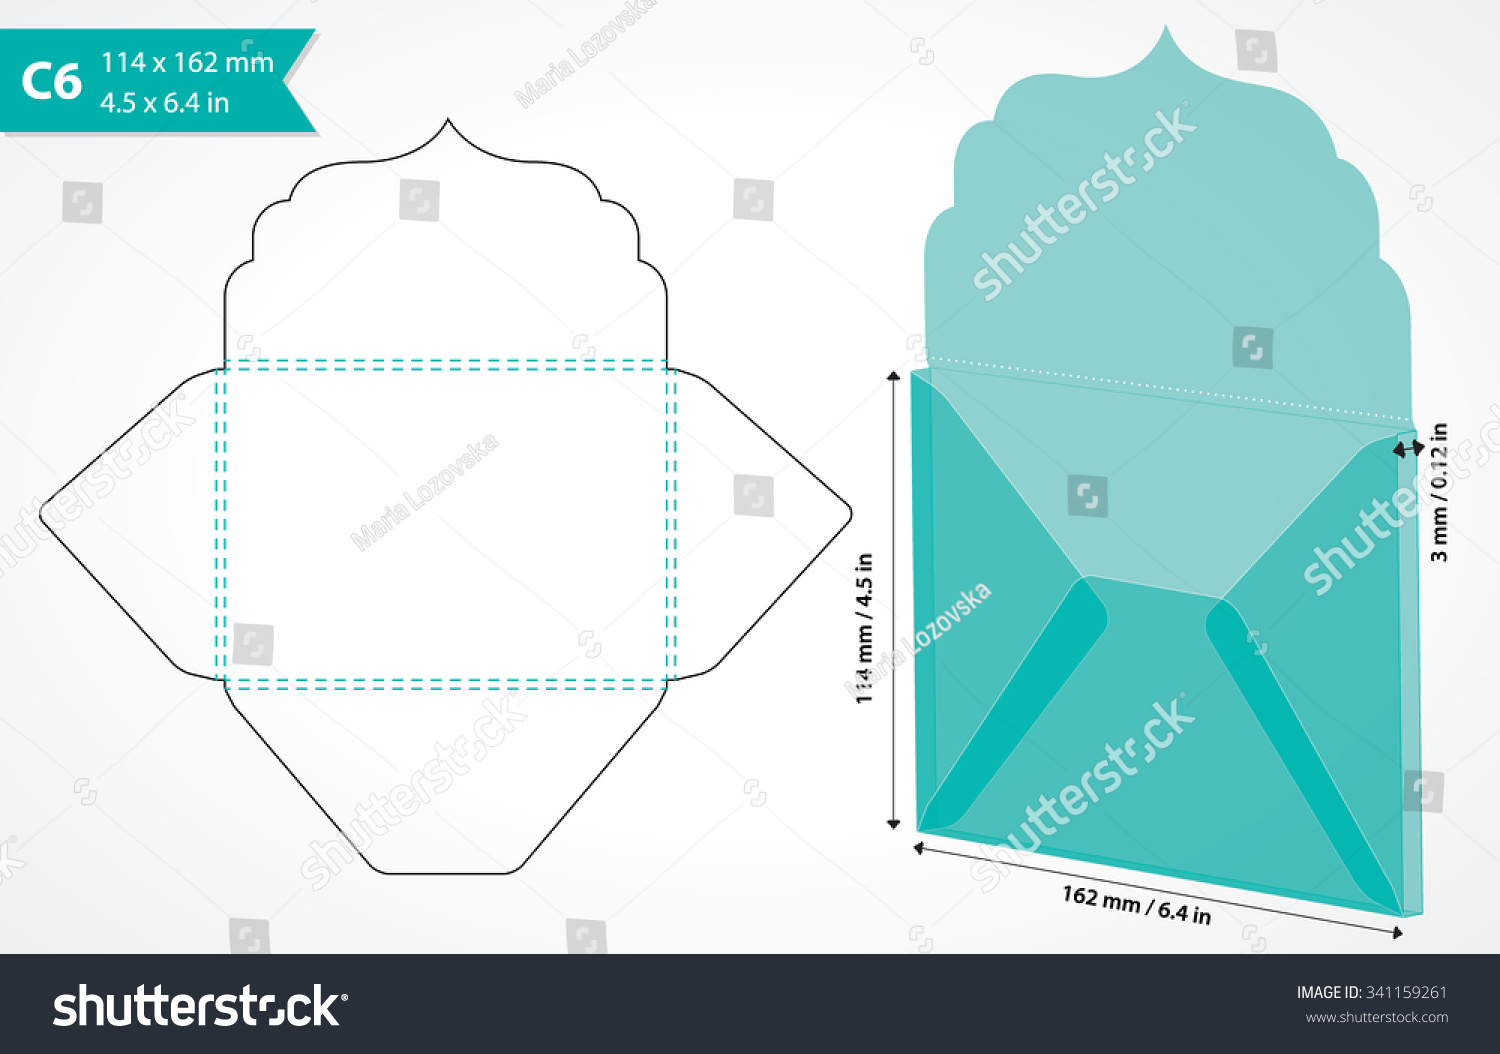 Download A6 Square Flap Envelope Template free - mmomediaget